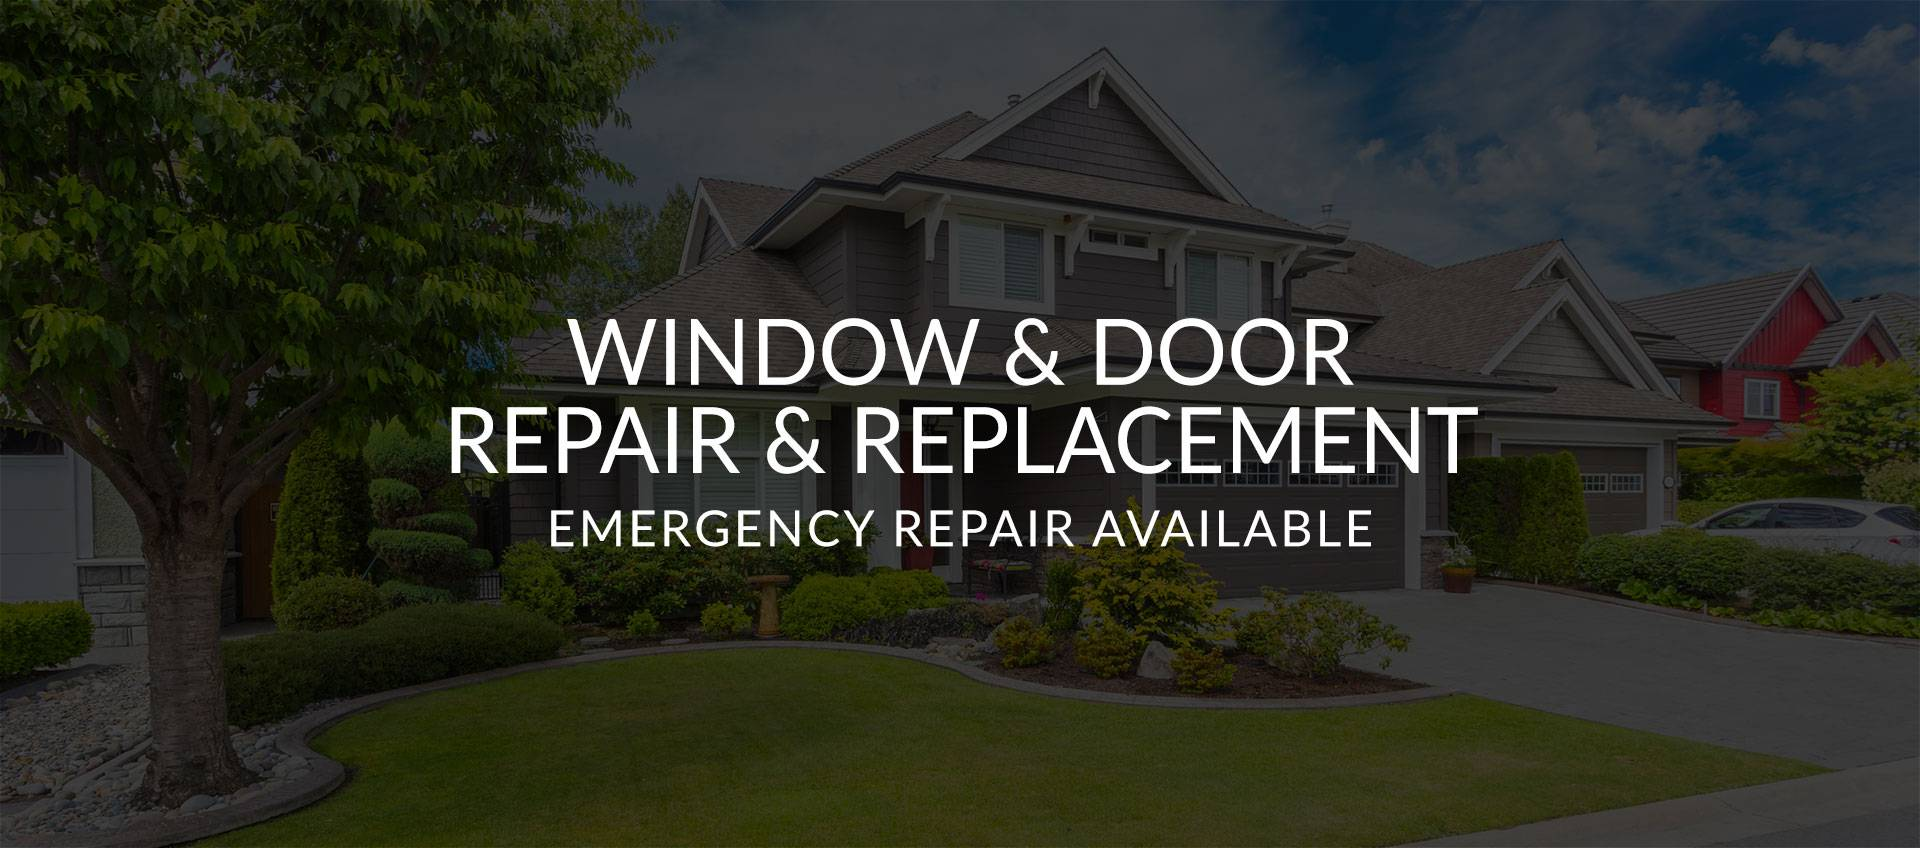 Dr. Exteriors - Slider - Window and Door Repair Replacement Installation